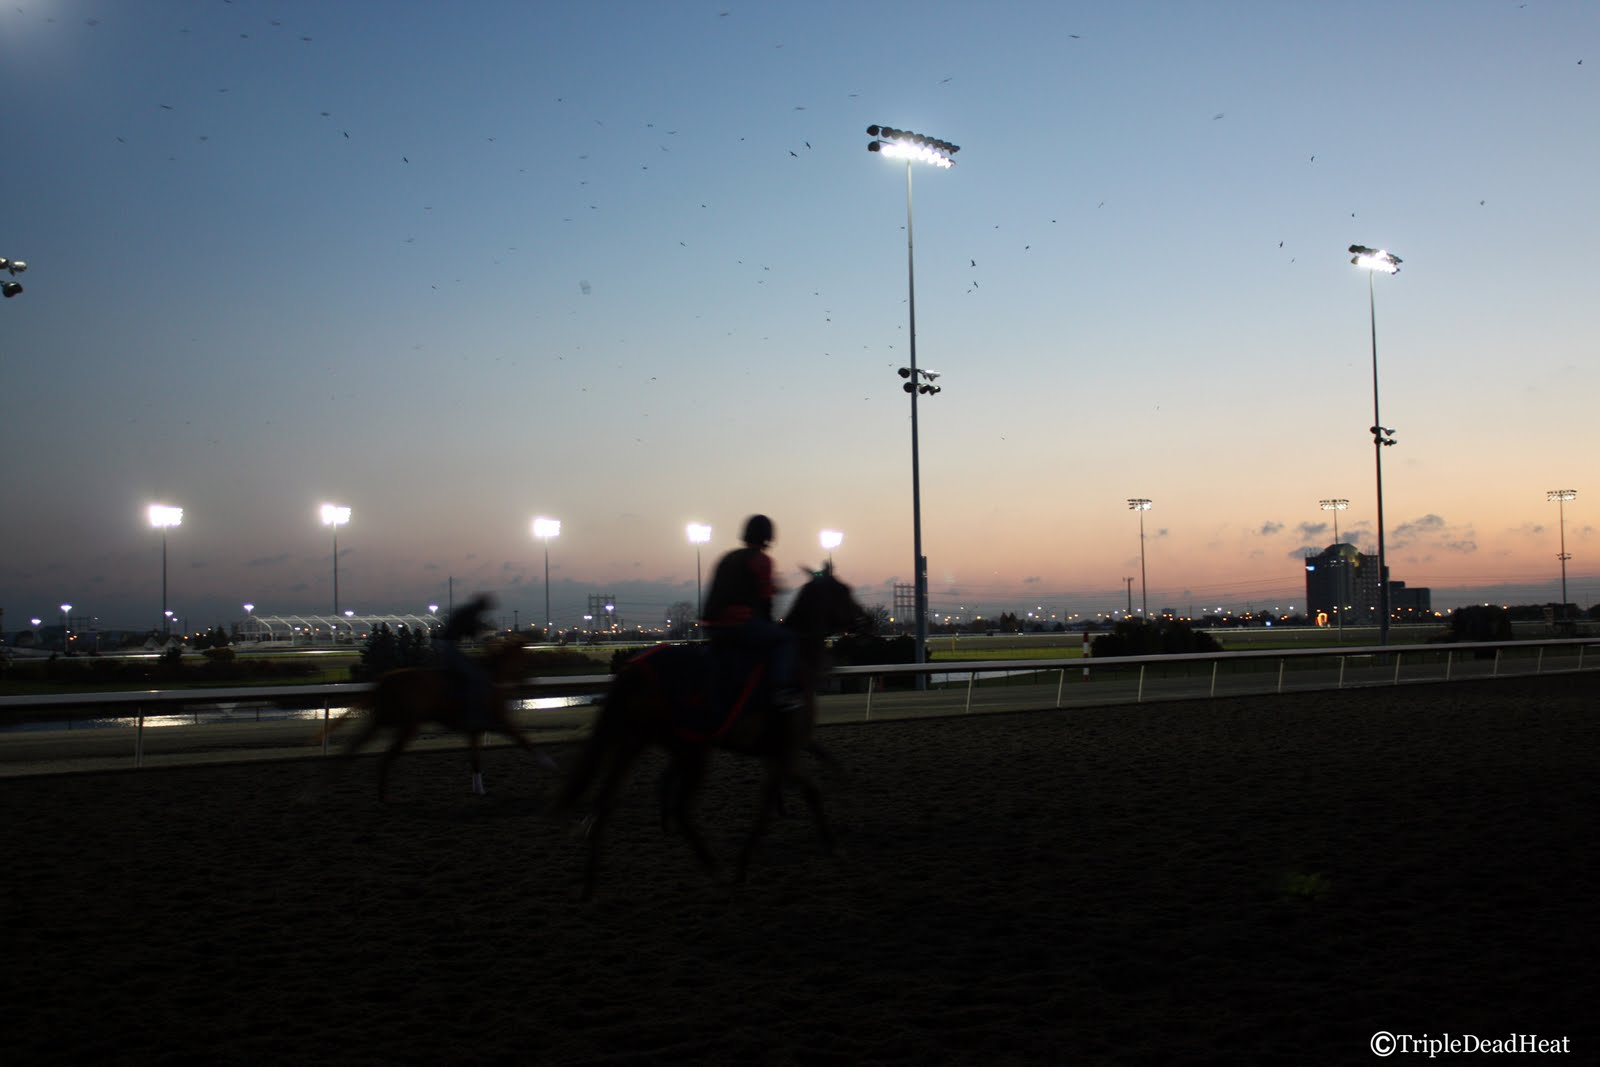 triple dead heat photo essay chasing stories across ontario squinting silhouette